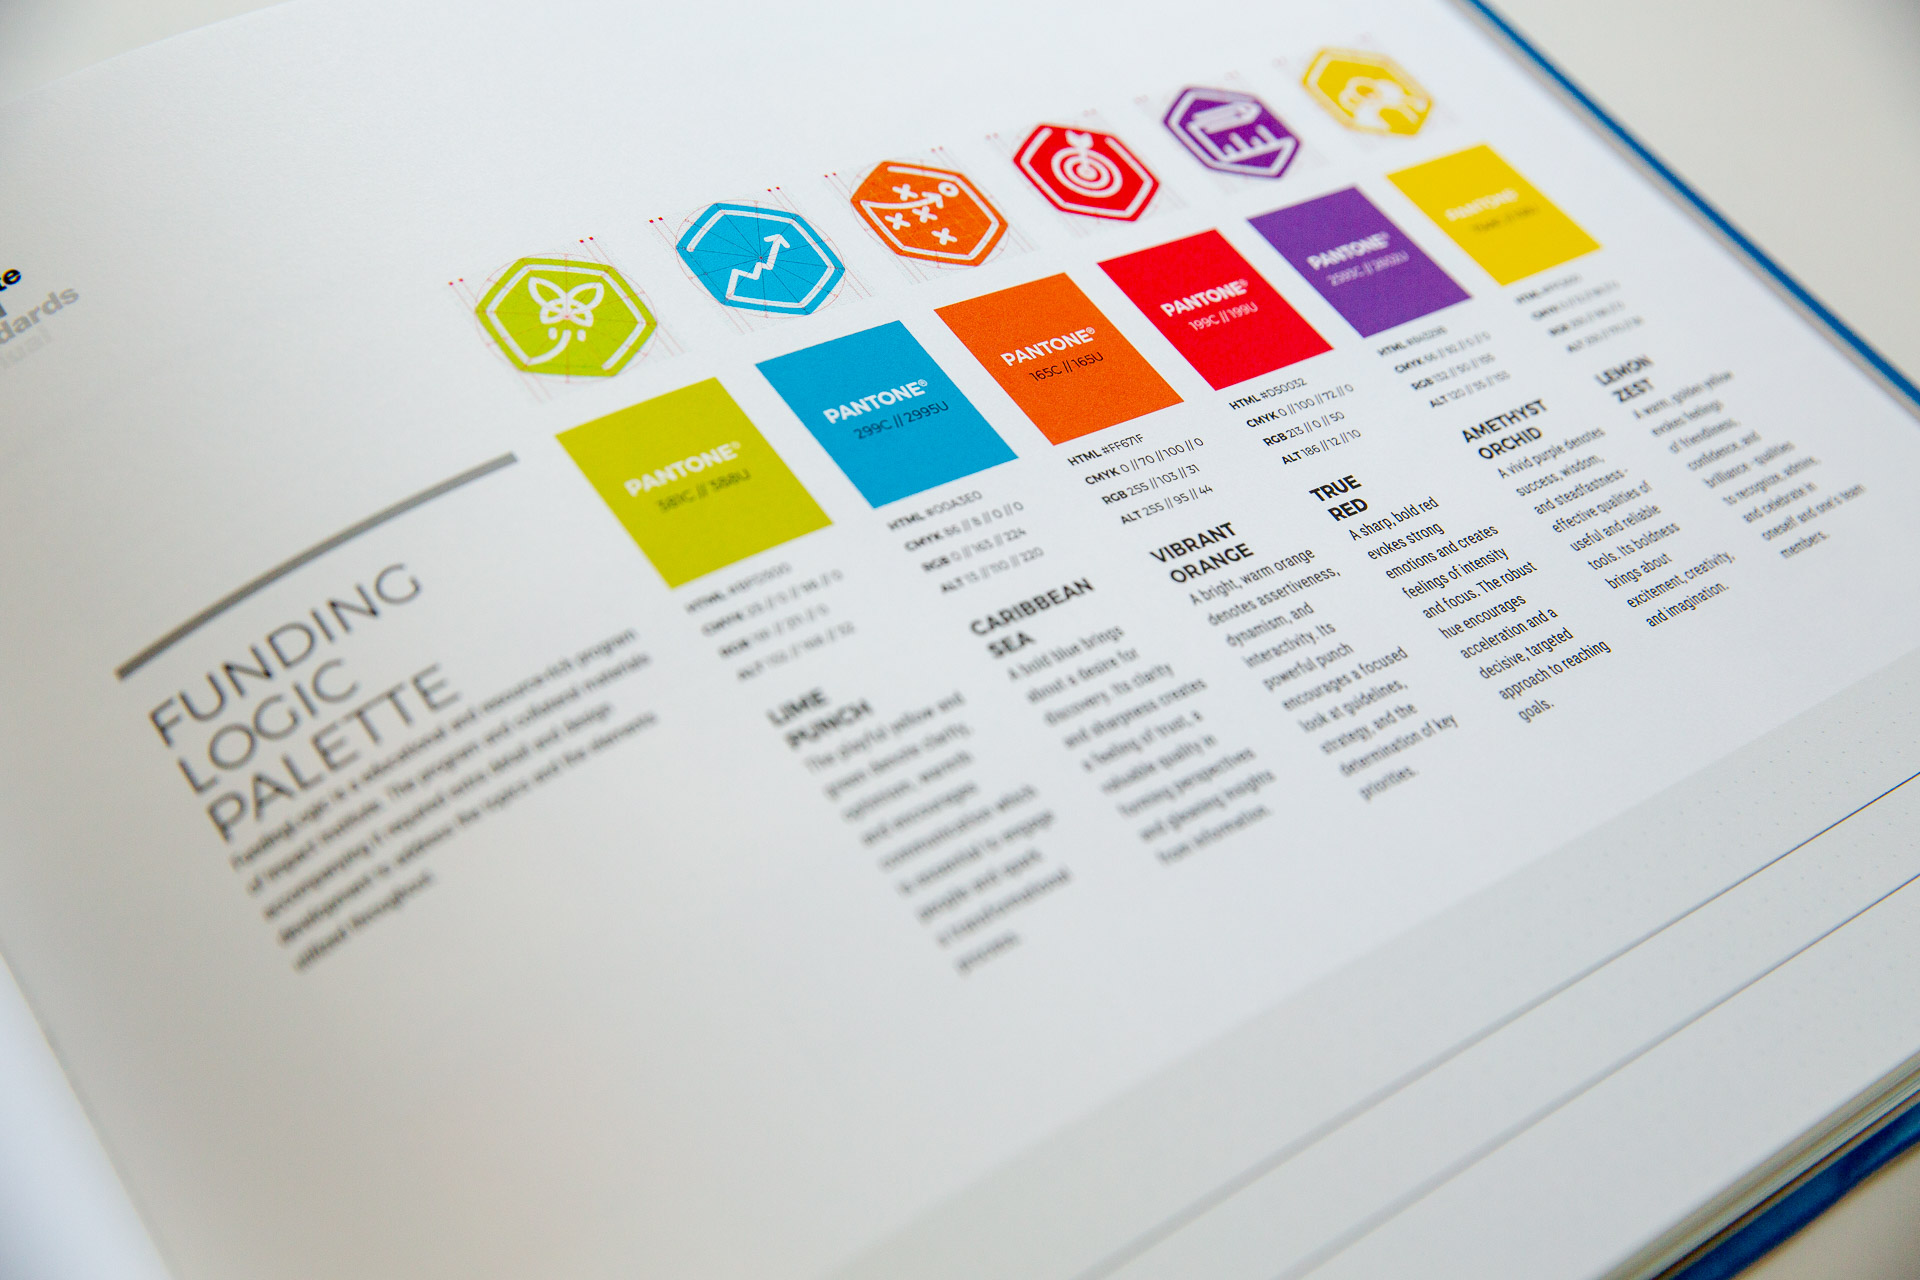 Impact brand guideline manual open to FundingLogic color scheme page